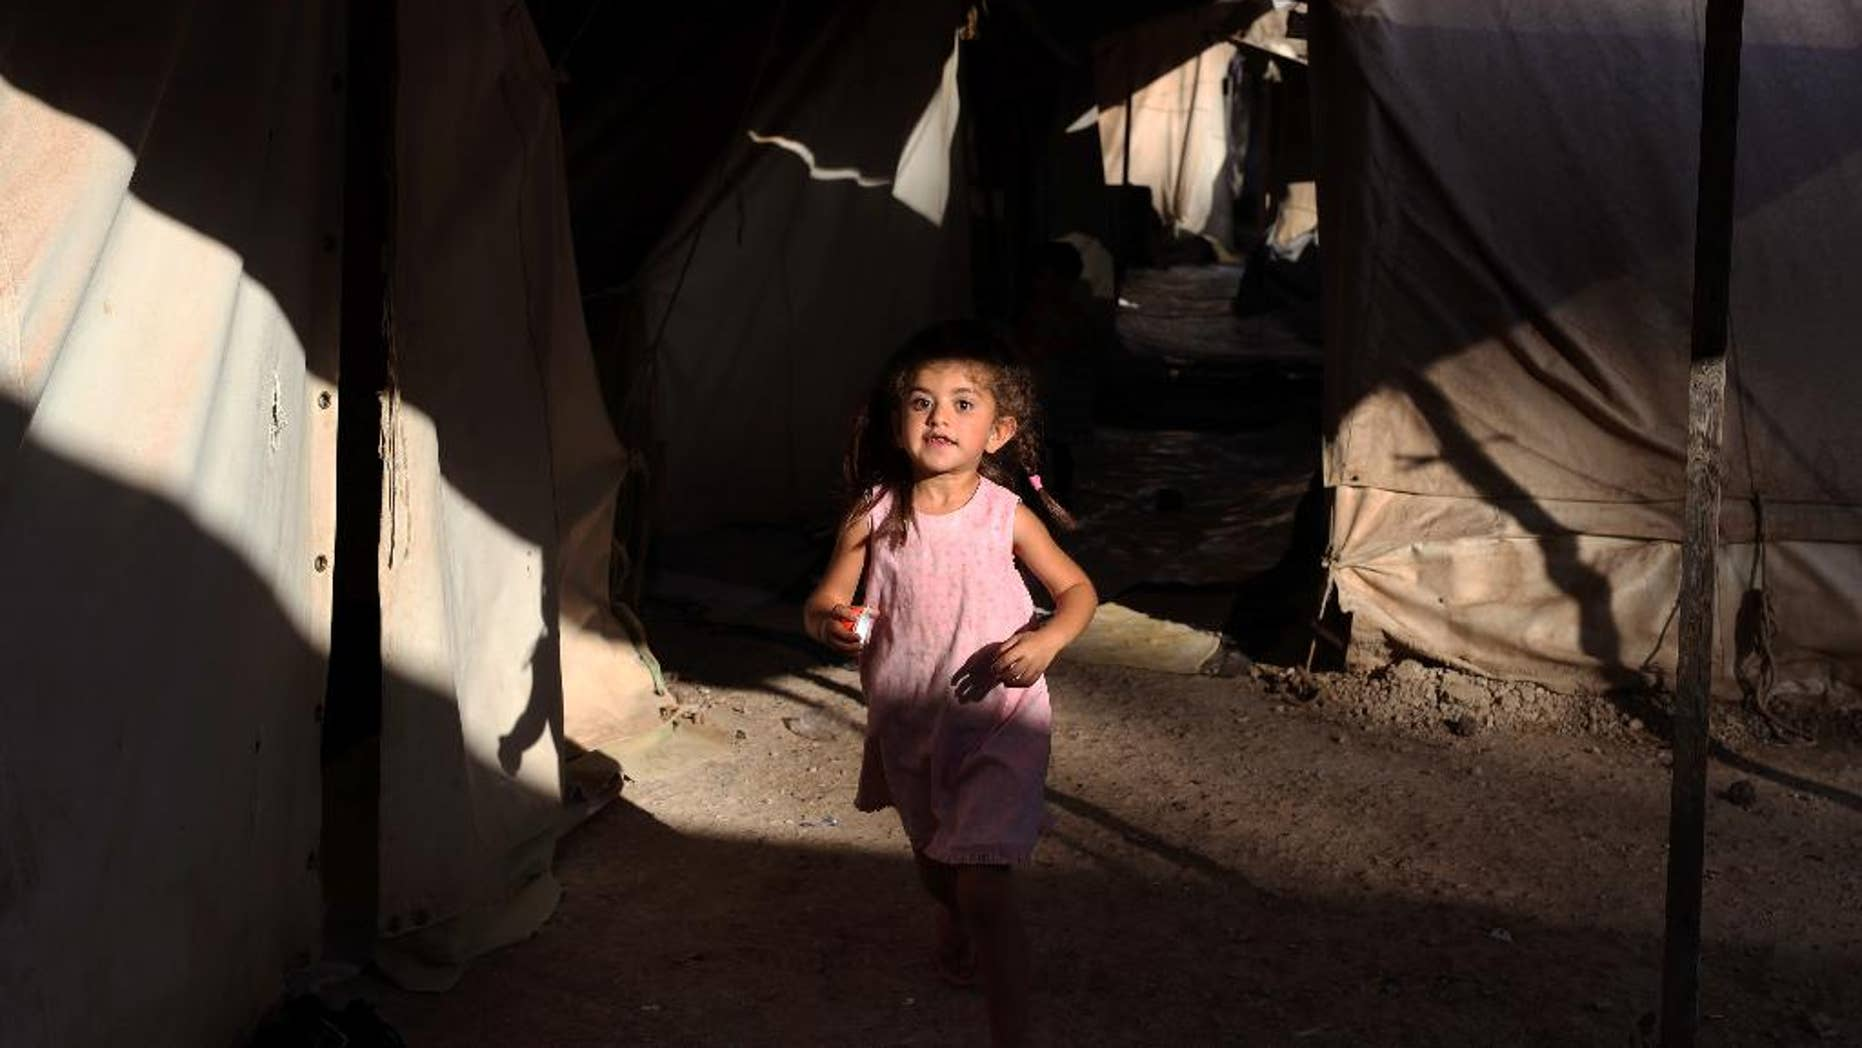 A little girl runs among tents as she plays with other children at Ritsona refugee camp, which hosts about 600 refugees and migrants, north of Athens, Monday, Sept. 12, 2016. The European Union will add 115 million euros ($129 million) in funding to humanitarian organizations in Greece to assist programs for refugees and migrants before the winter, officials said Saturday. (AP Photo/Petros Giannakouris)